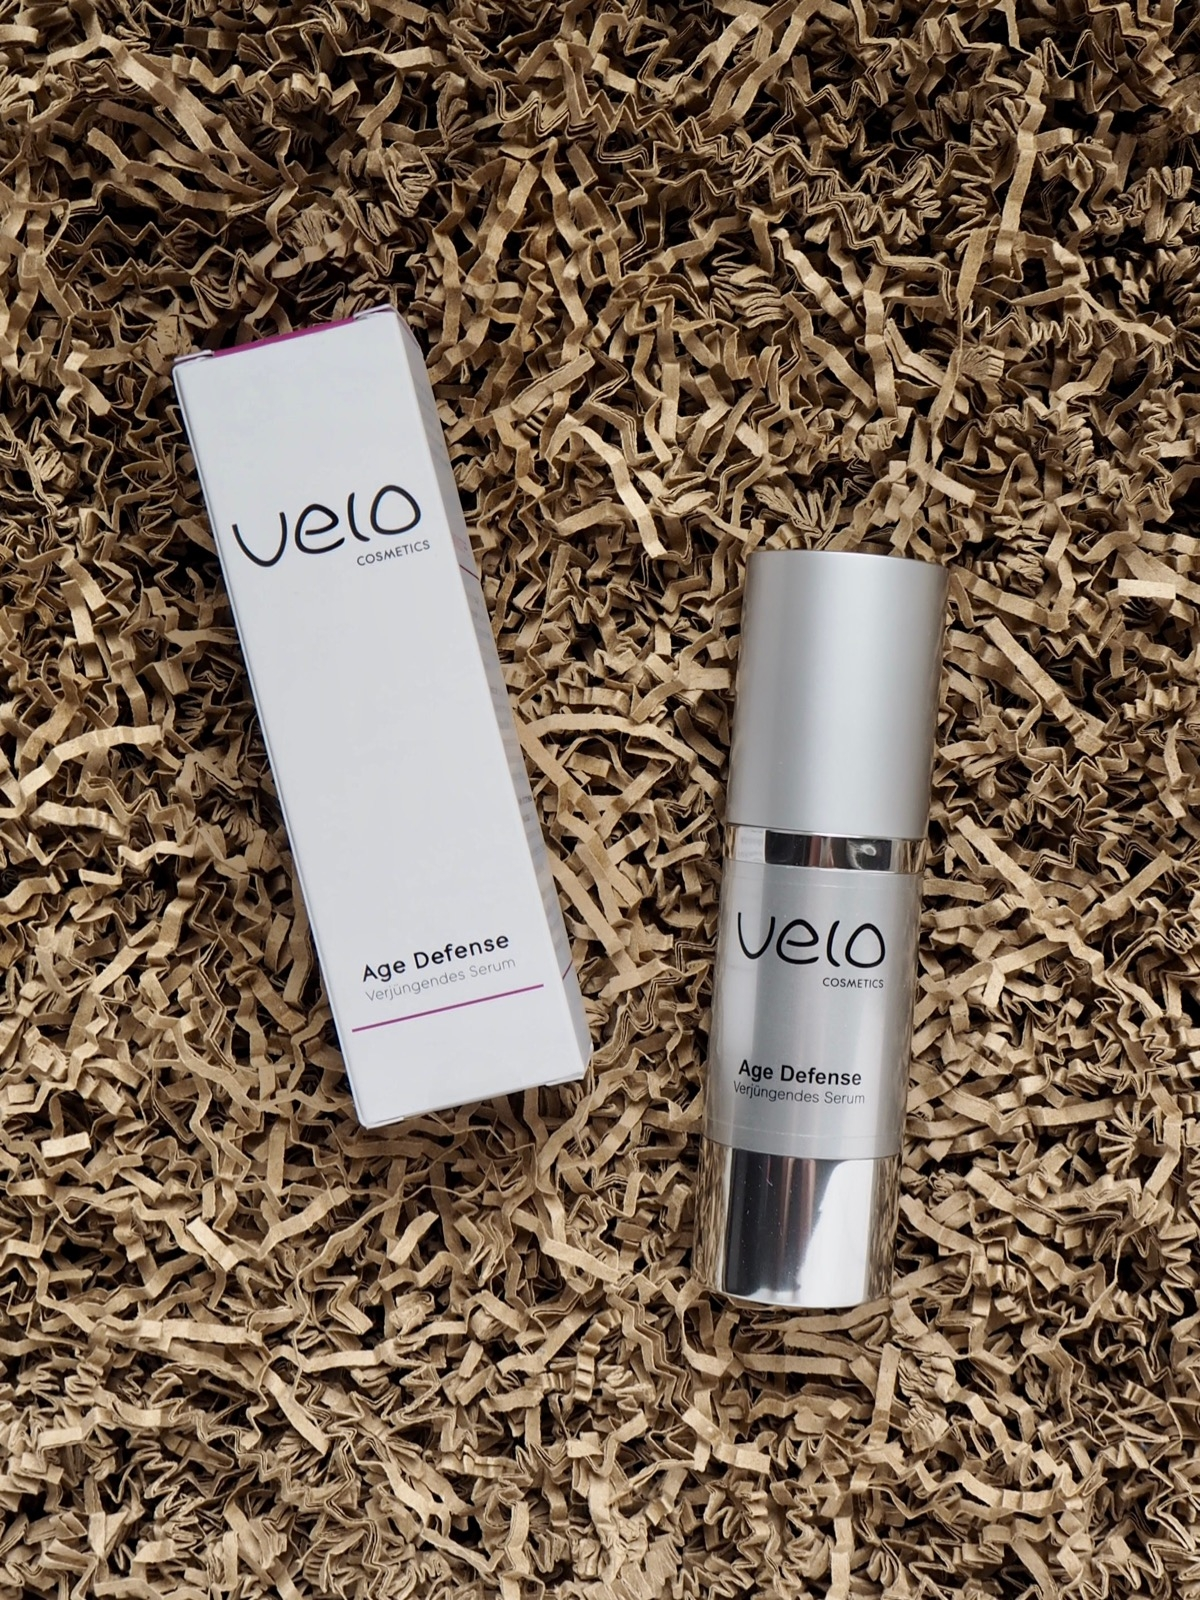 Velo Cosmetics Age Defense